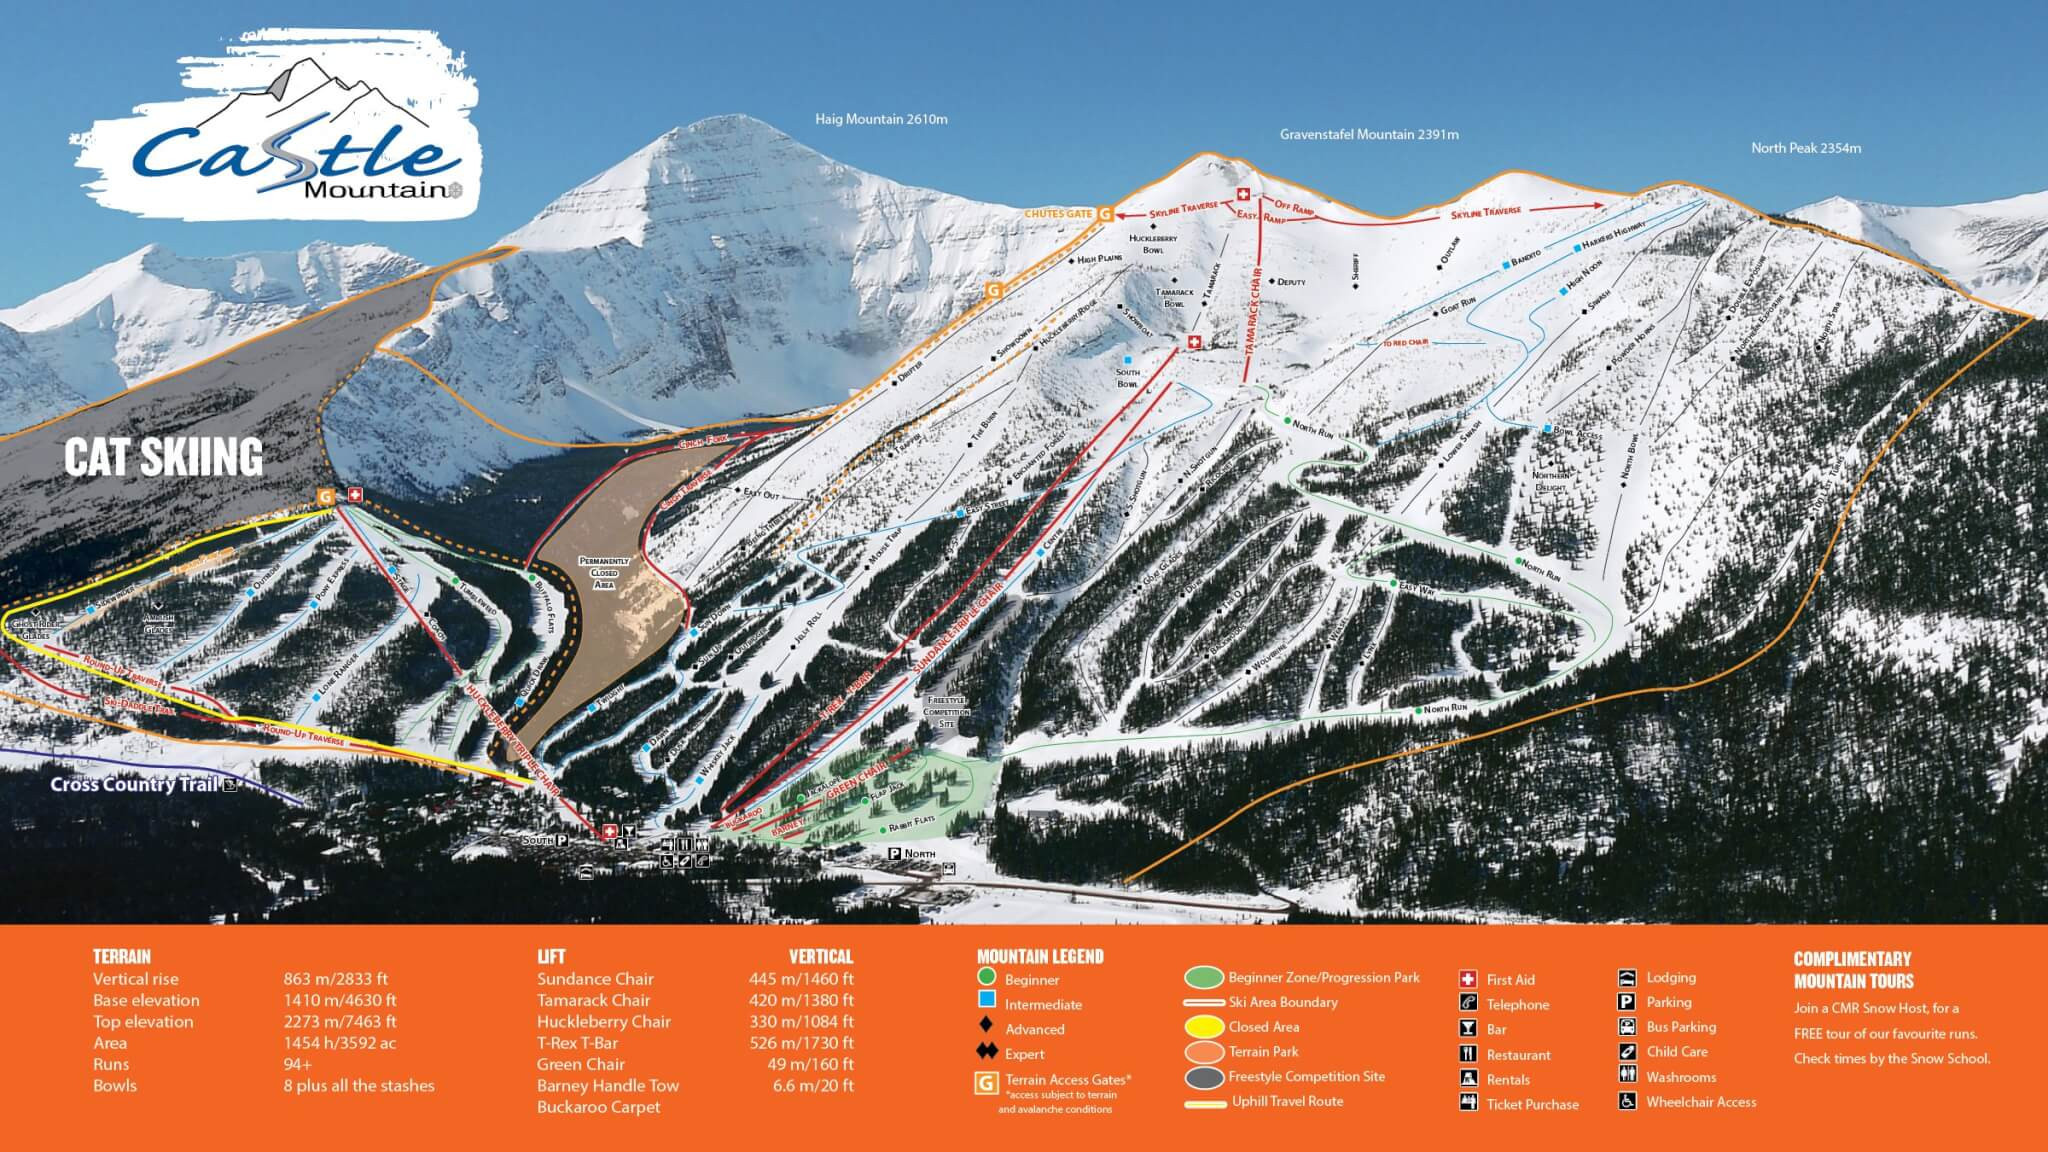 Pistenplan von Castle Mountain Resort